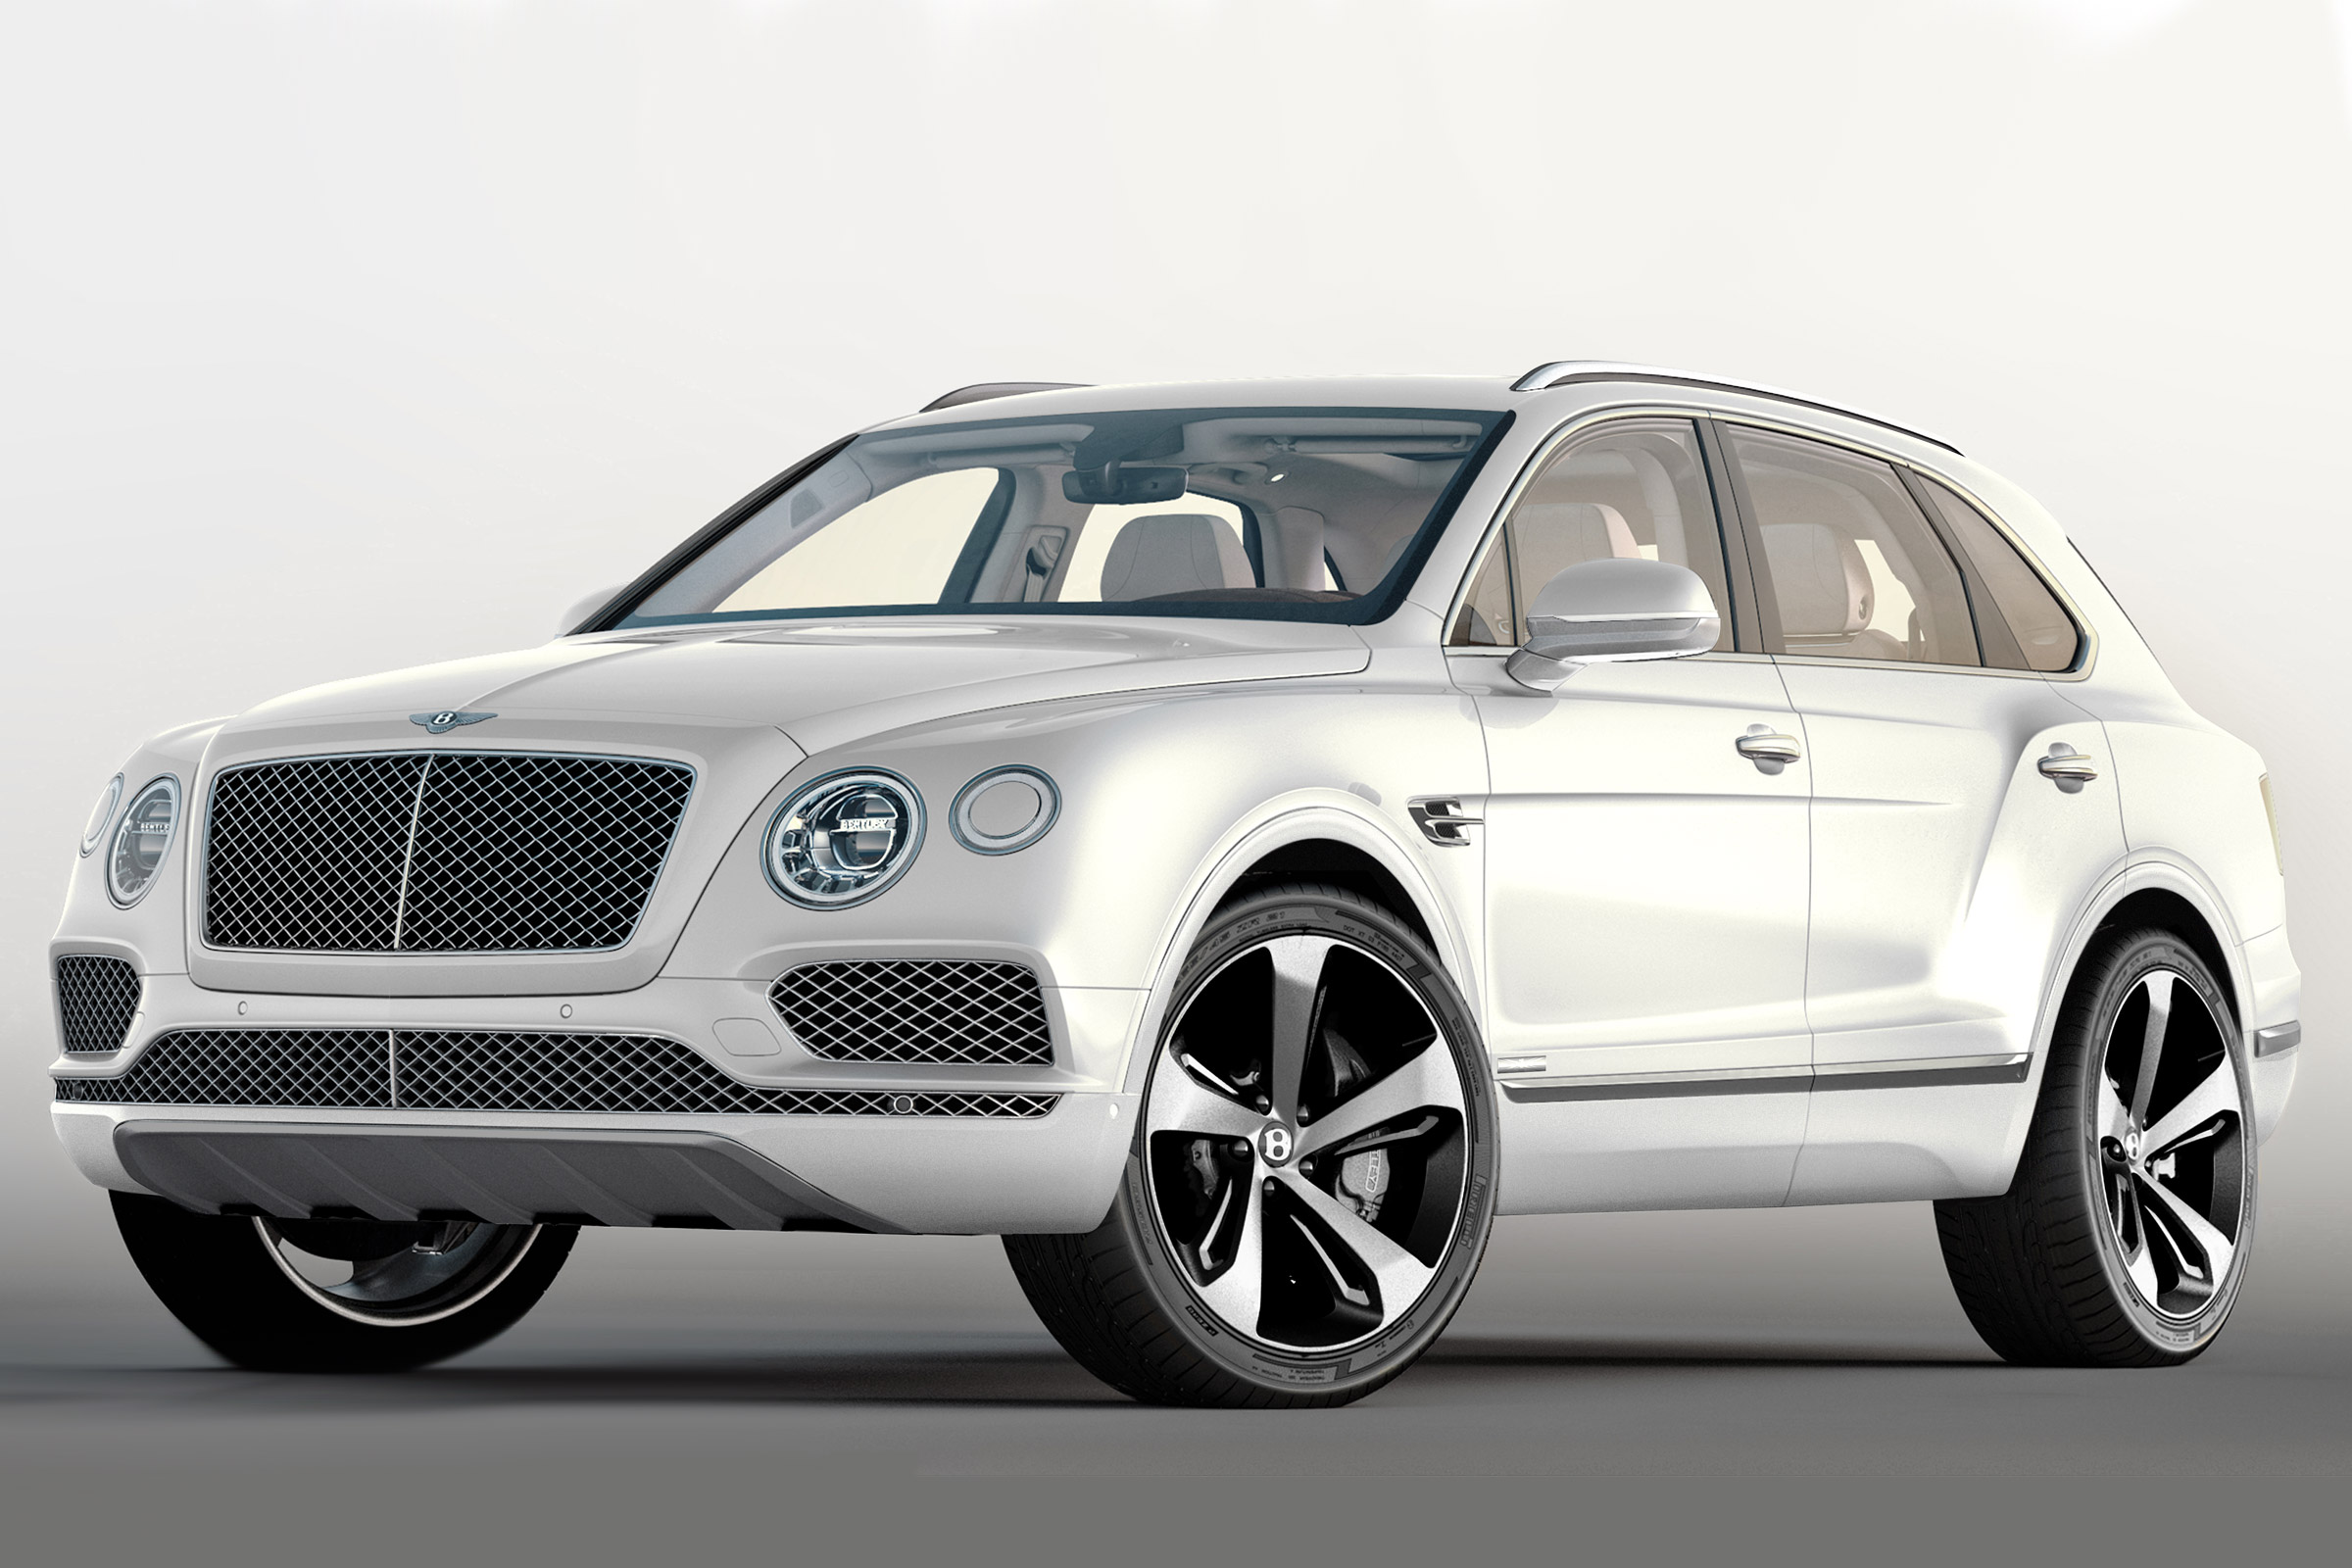 World's Fastest SUV launched in India